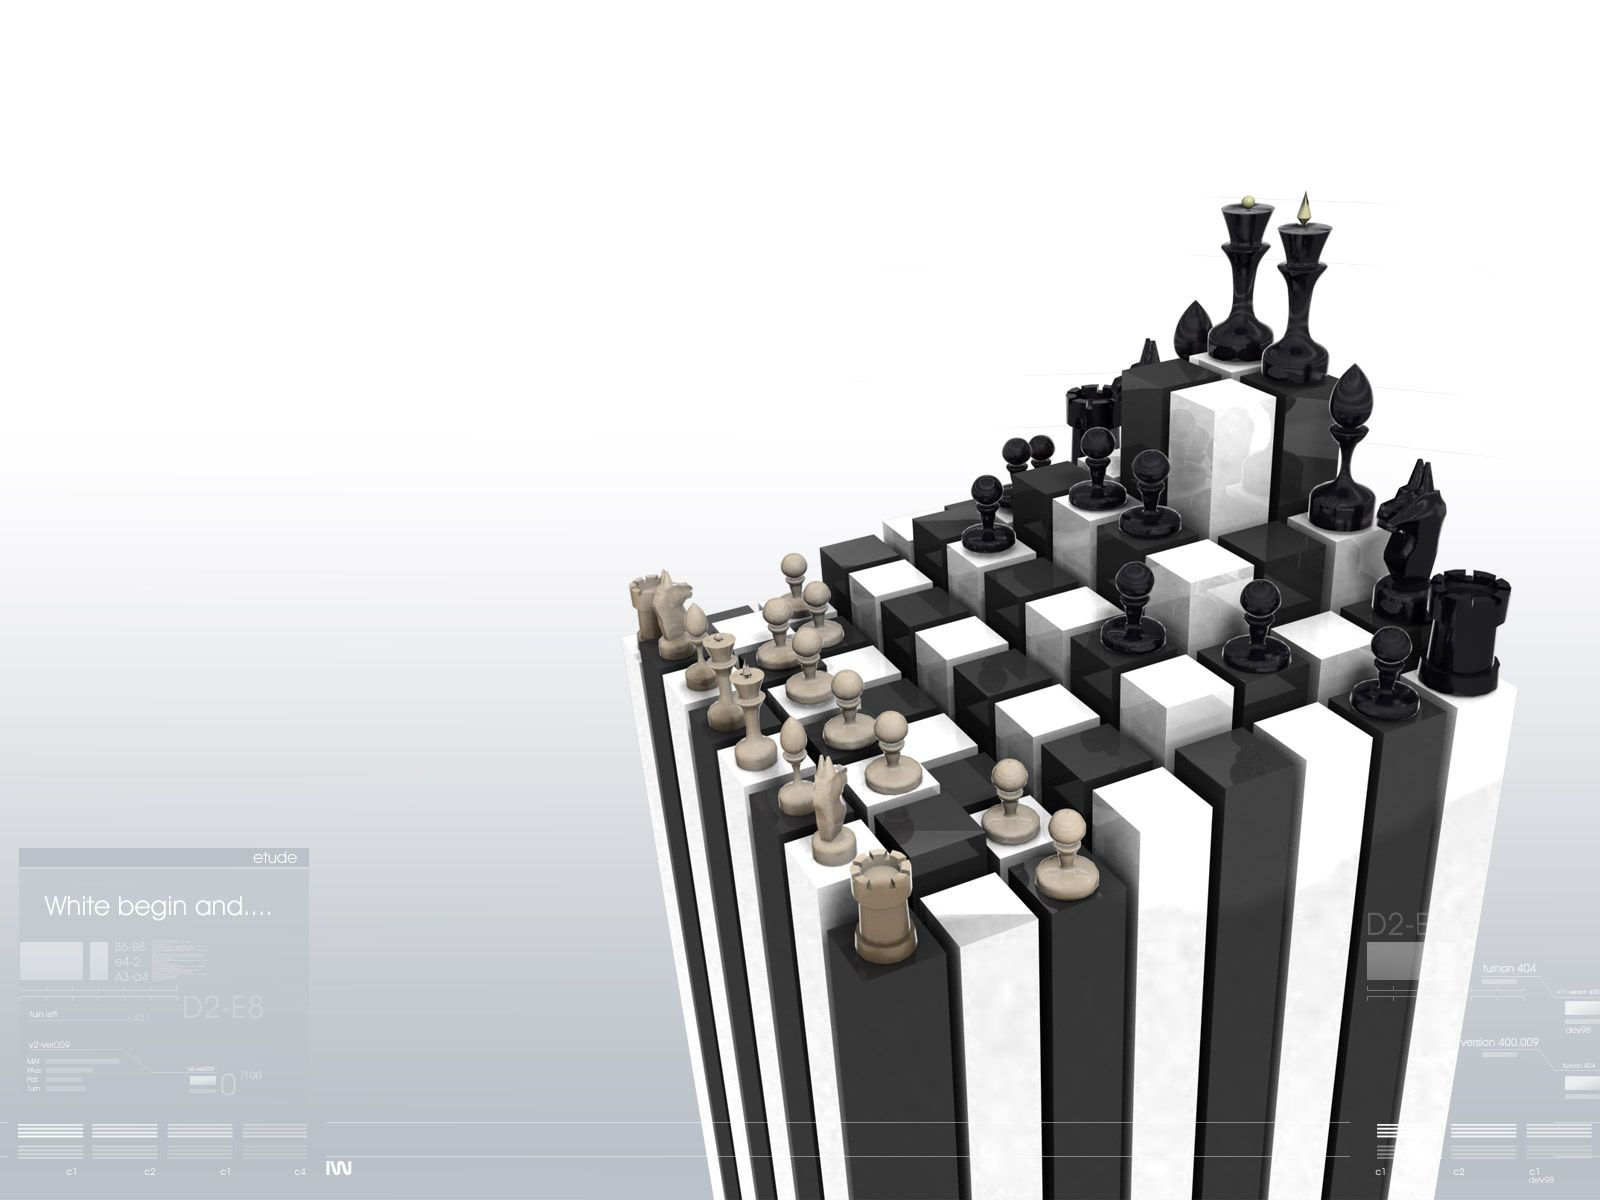 Chess wallpapers hd wallpapers pinterest chess hd wallpaper chess wallpapers hd wallpapers pinterest chess hd wallpaper and wallpaper voltagebd Gallery